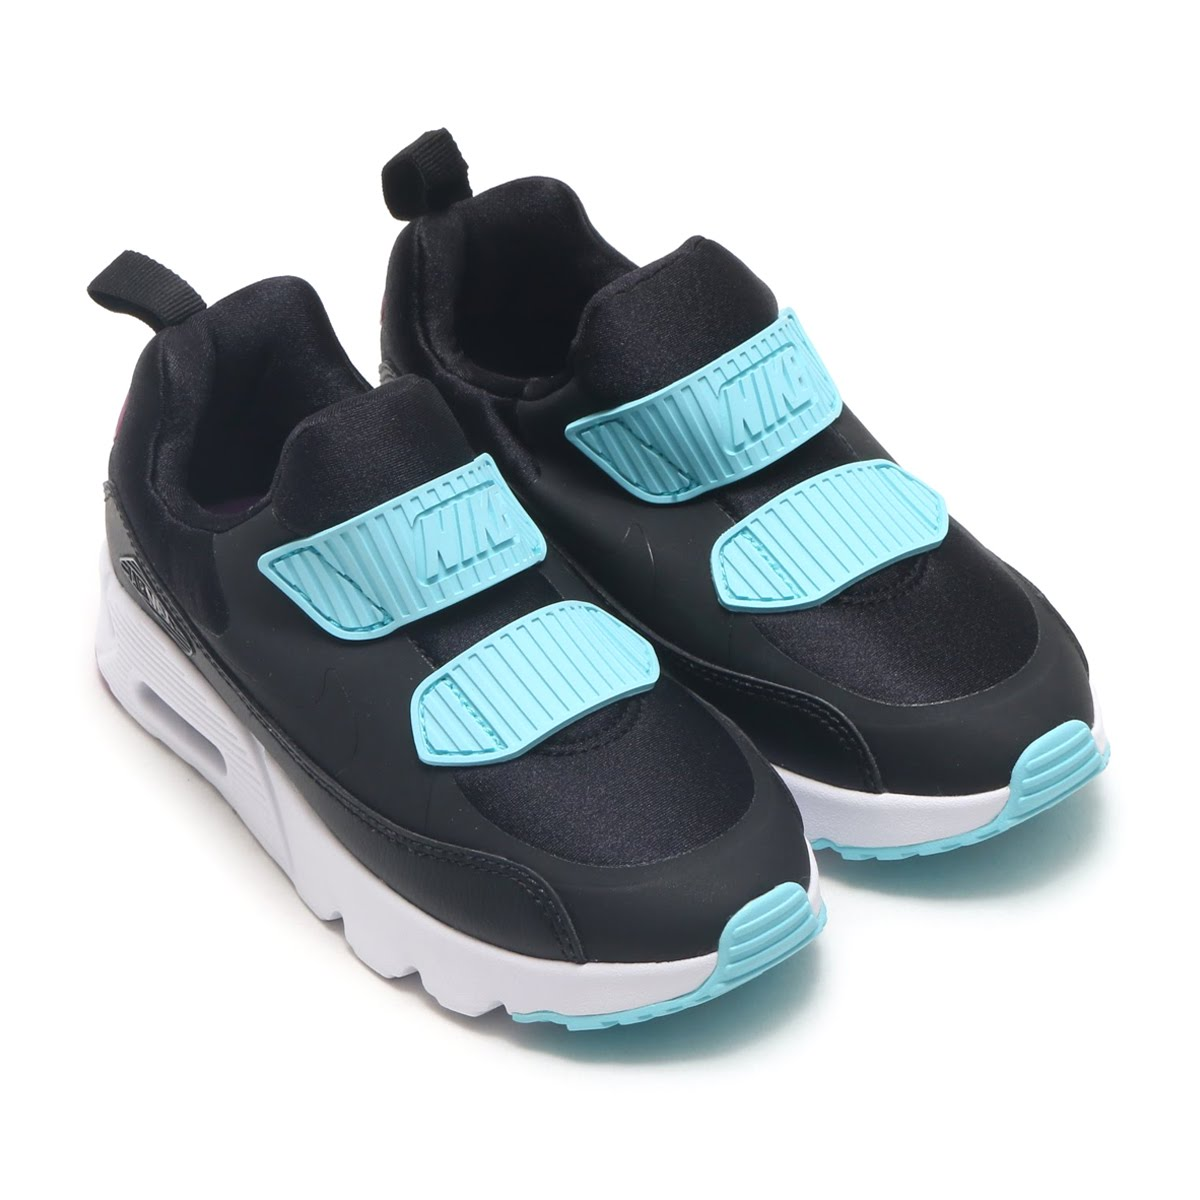 the best attitude 48f09 d0848 I adopt lightness and soft form mid sole superior in the durability. I integrate  bithe bulldog Max Air ...